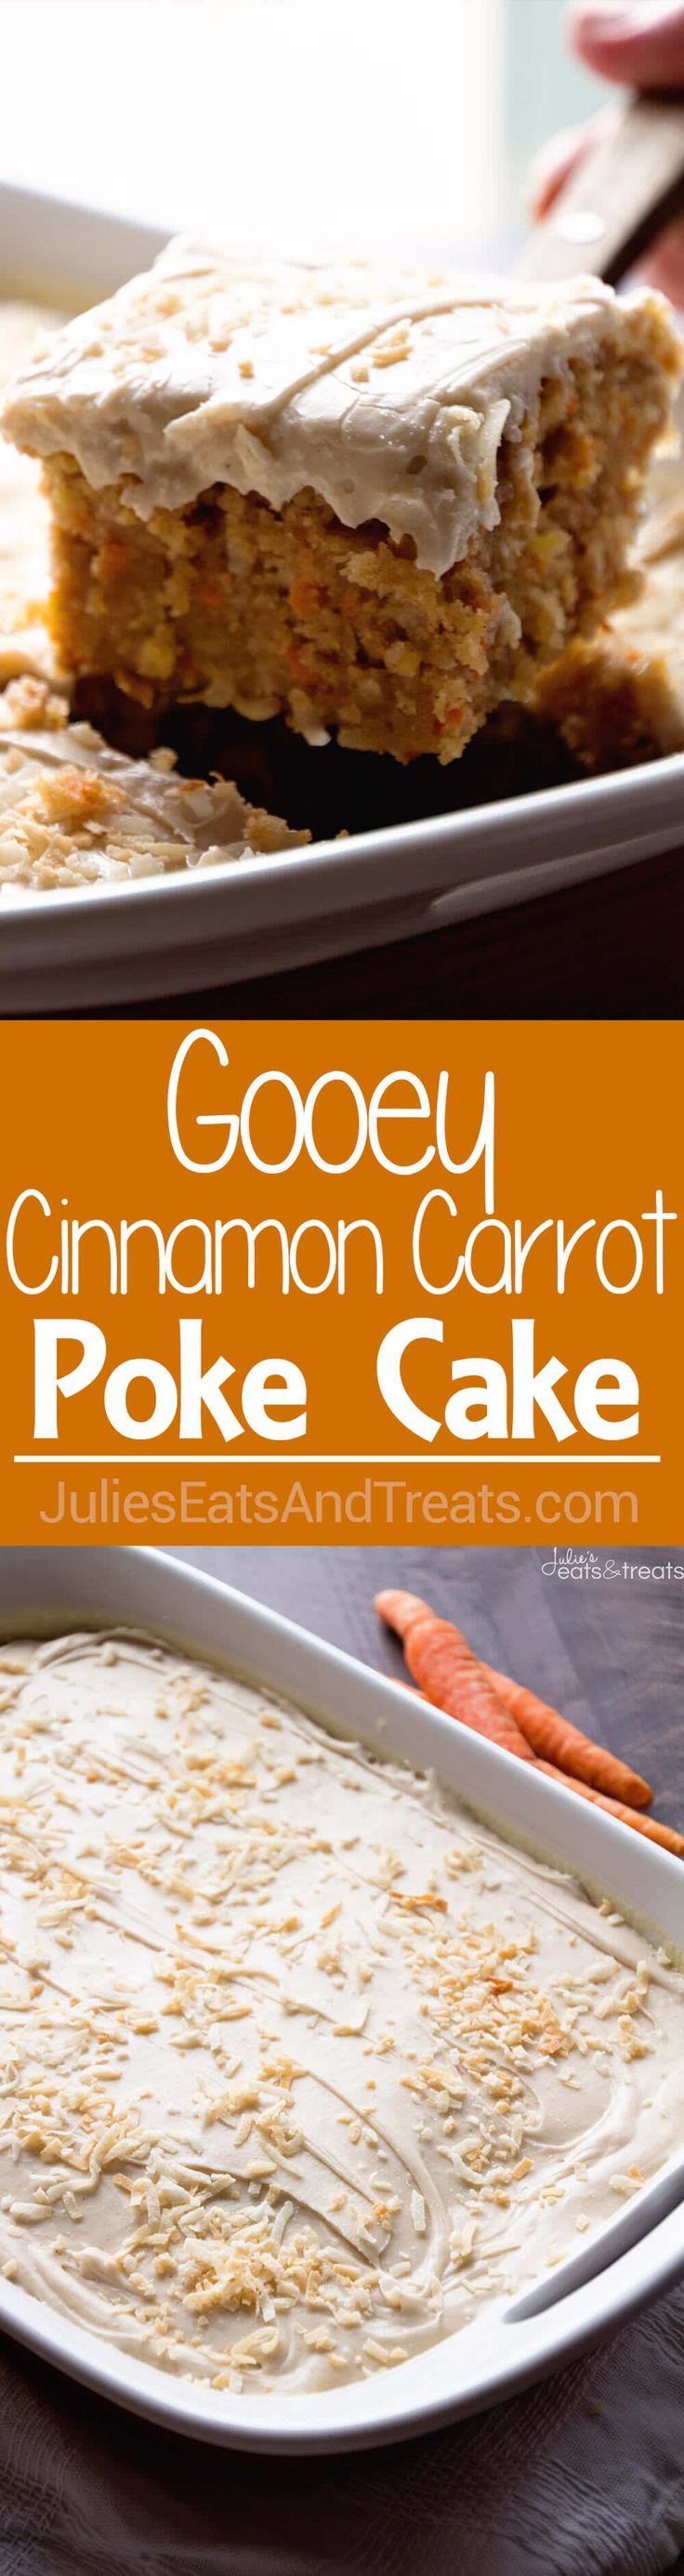 Gooey Cinnamon Carrot Poke Cake ~ Amazingly Moist Cake Stuffed with Carrots, Coconut, Pineapple, Topped with a  Buttermilk Glaze and Cinnamon Cream Cheese Frosting! via @julieseats